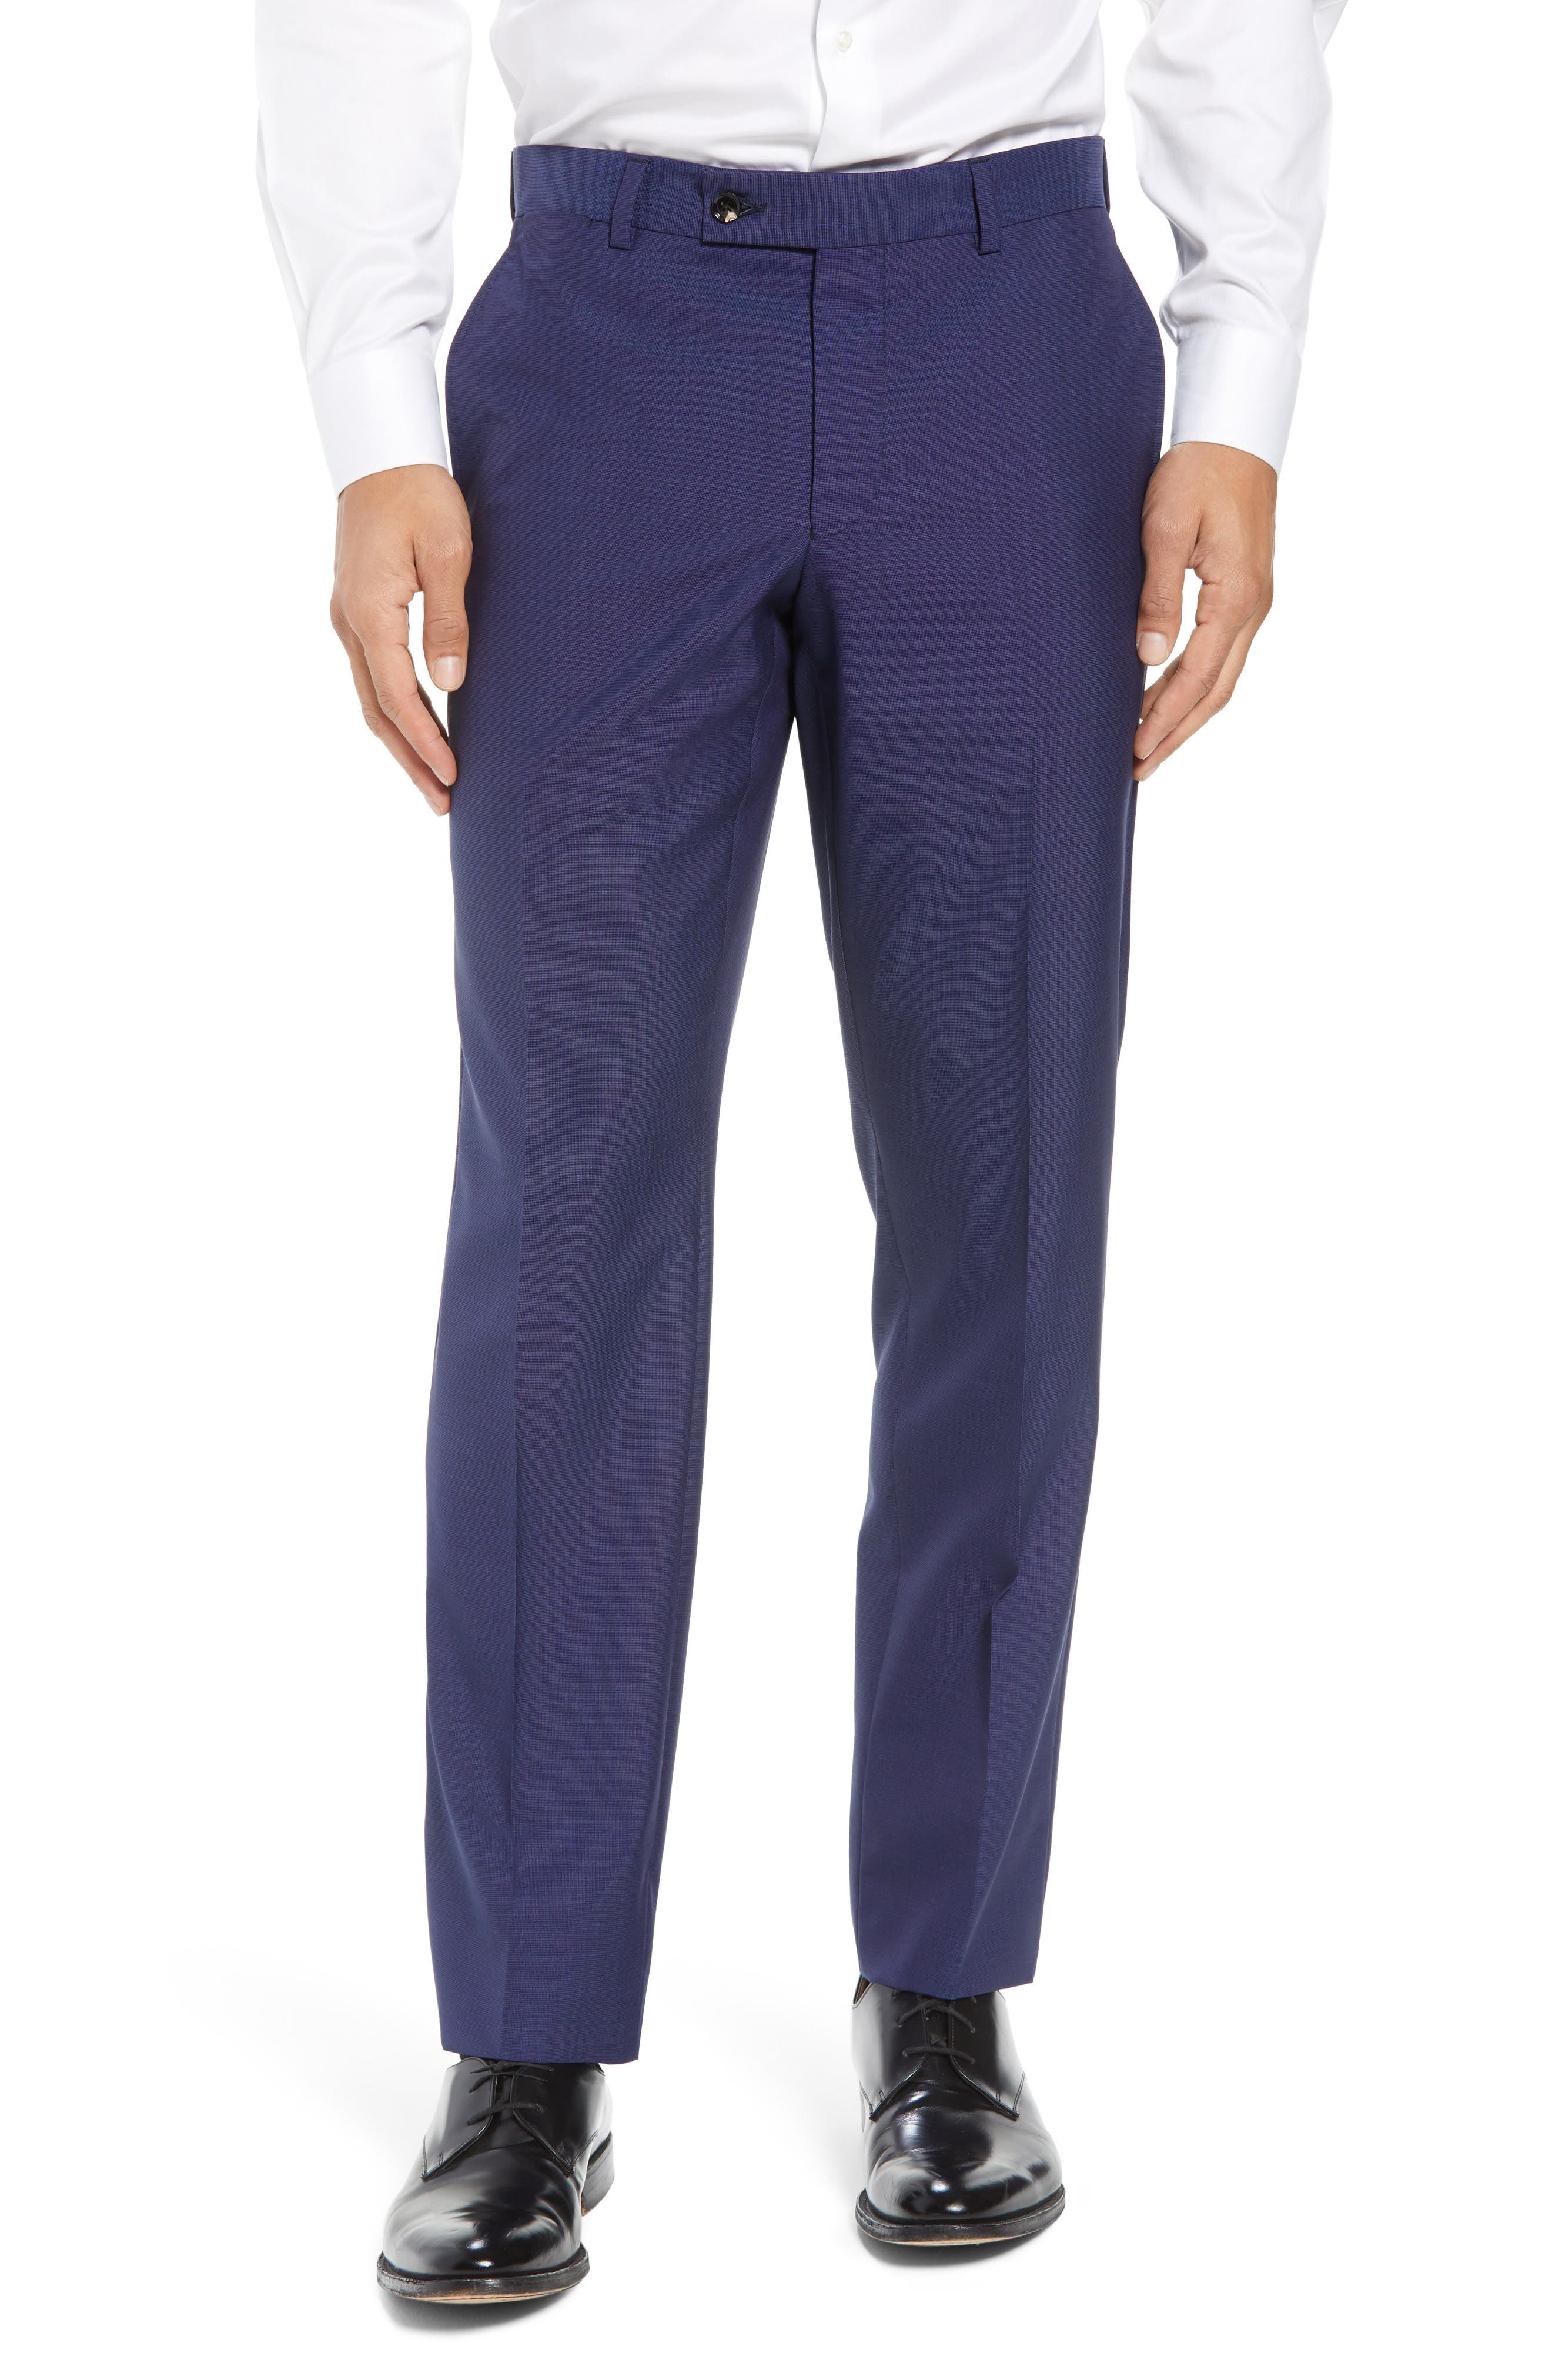 TED BAKER LONDON, Jefferson Flat Front Solid Wool Trousers, Alternate thumbnail 2, color, BLUE